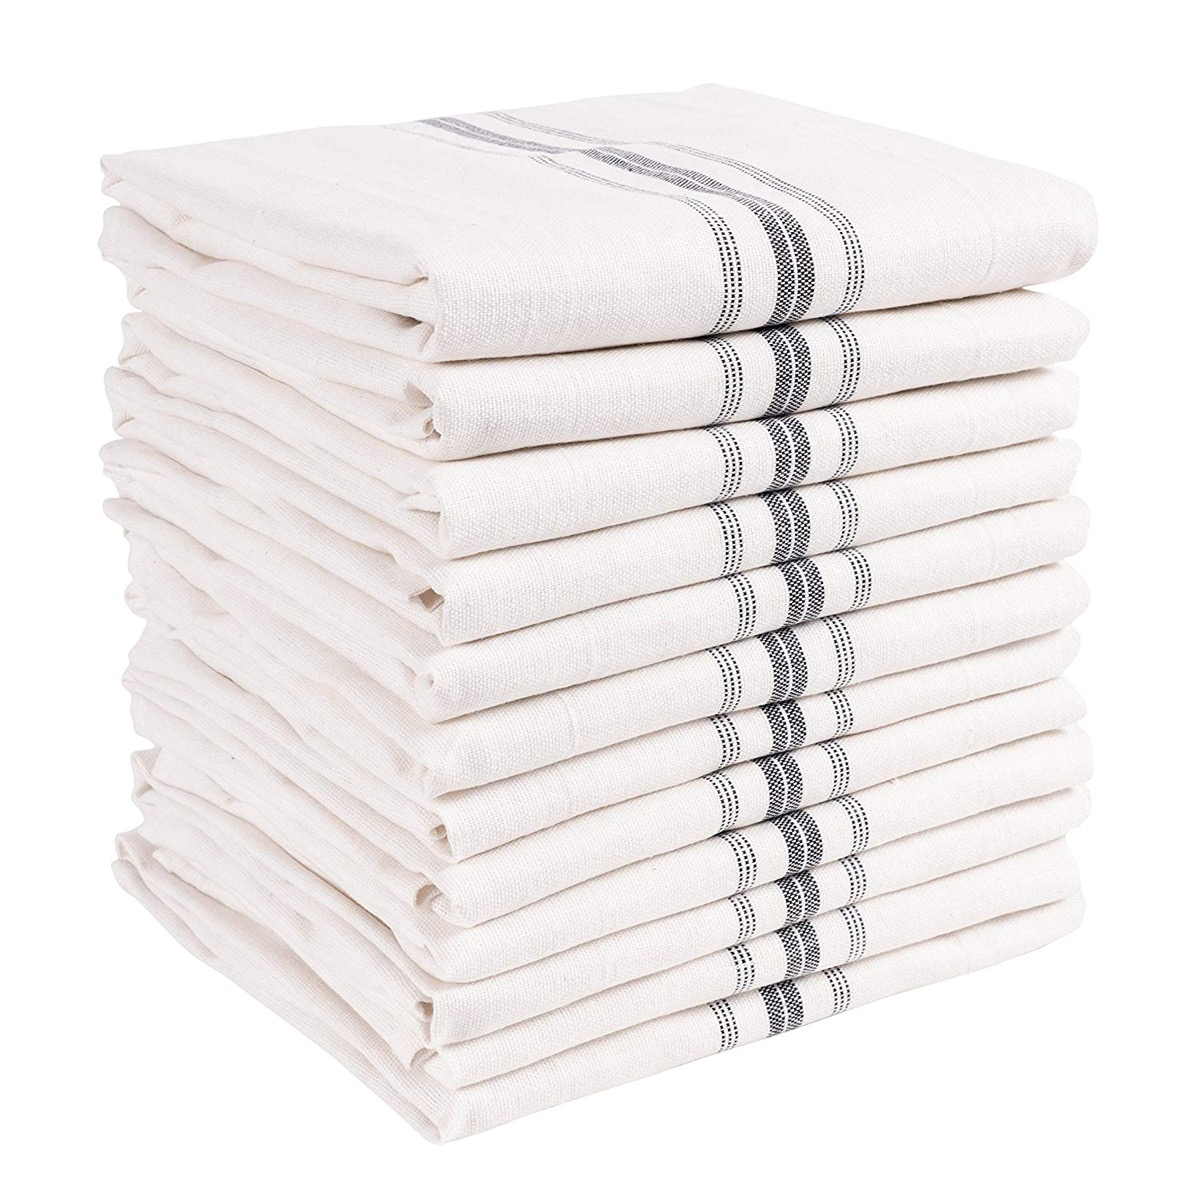 stack of white kitchen towels, rustic farmhouse decor